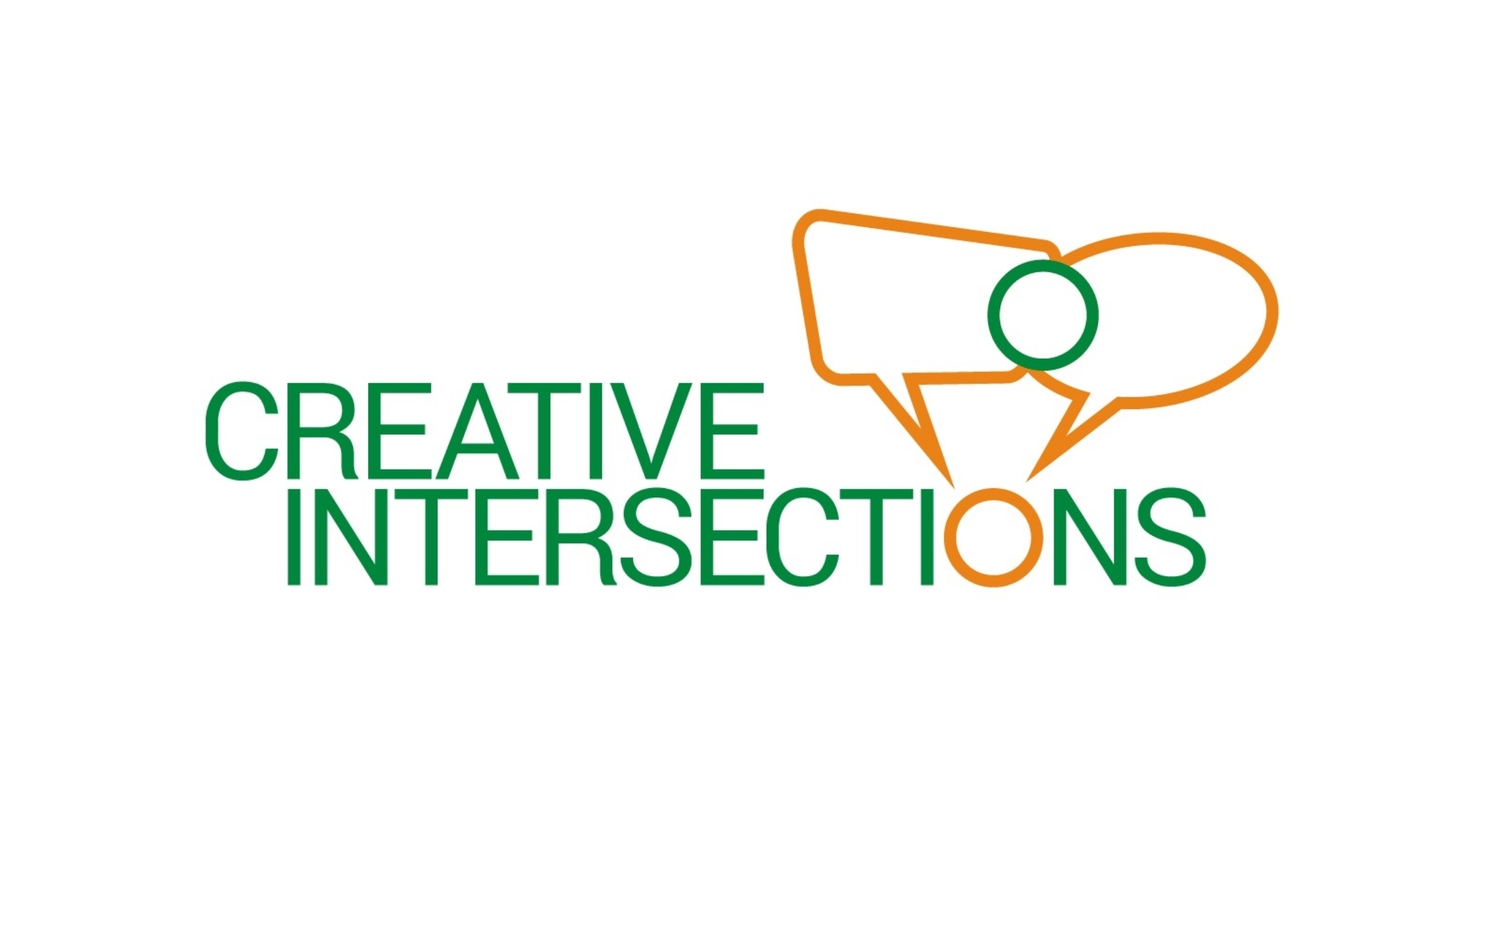 Creative Intersections